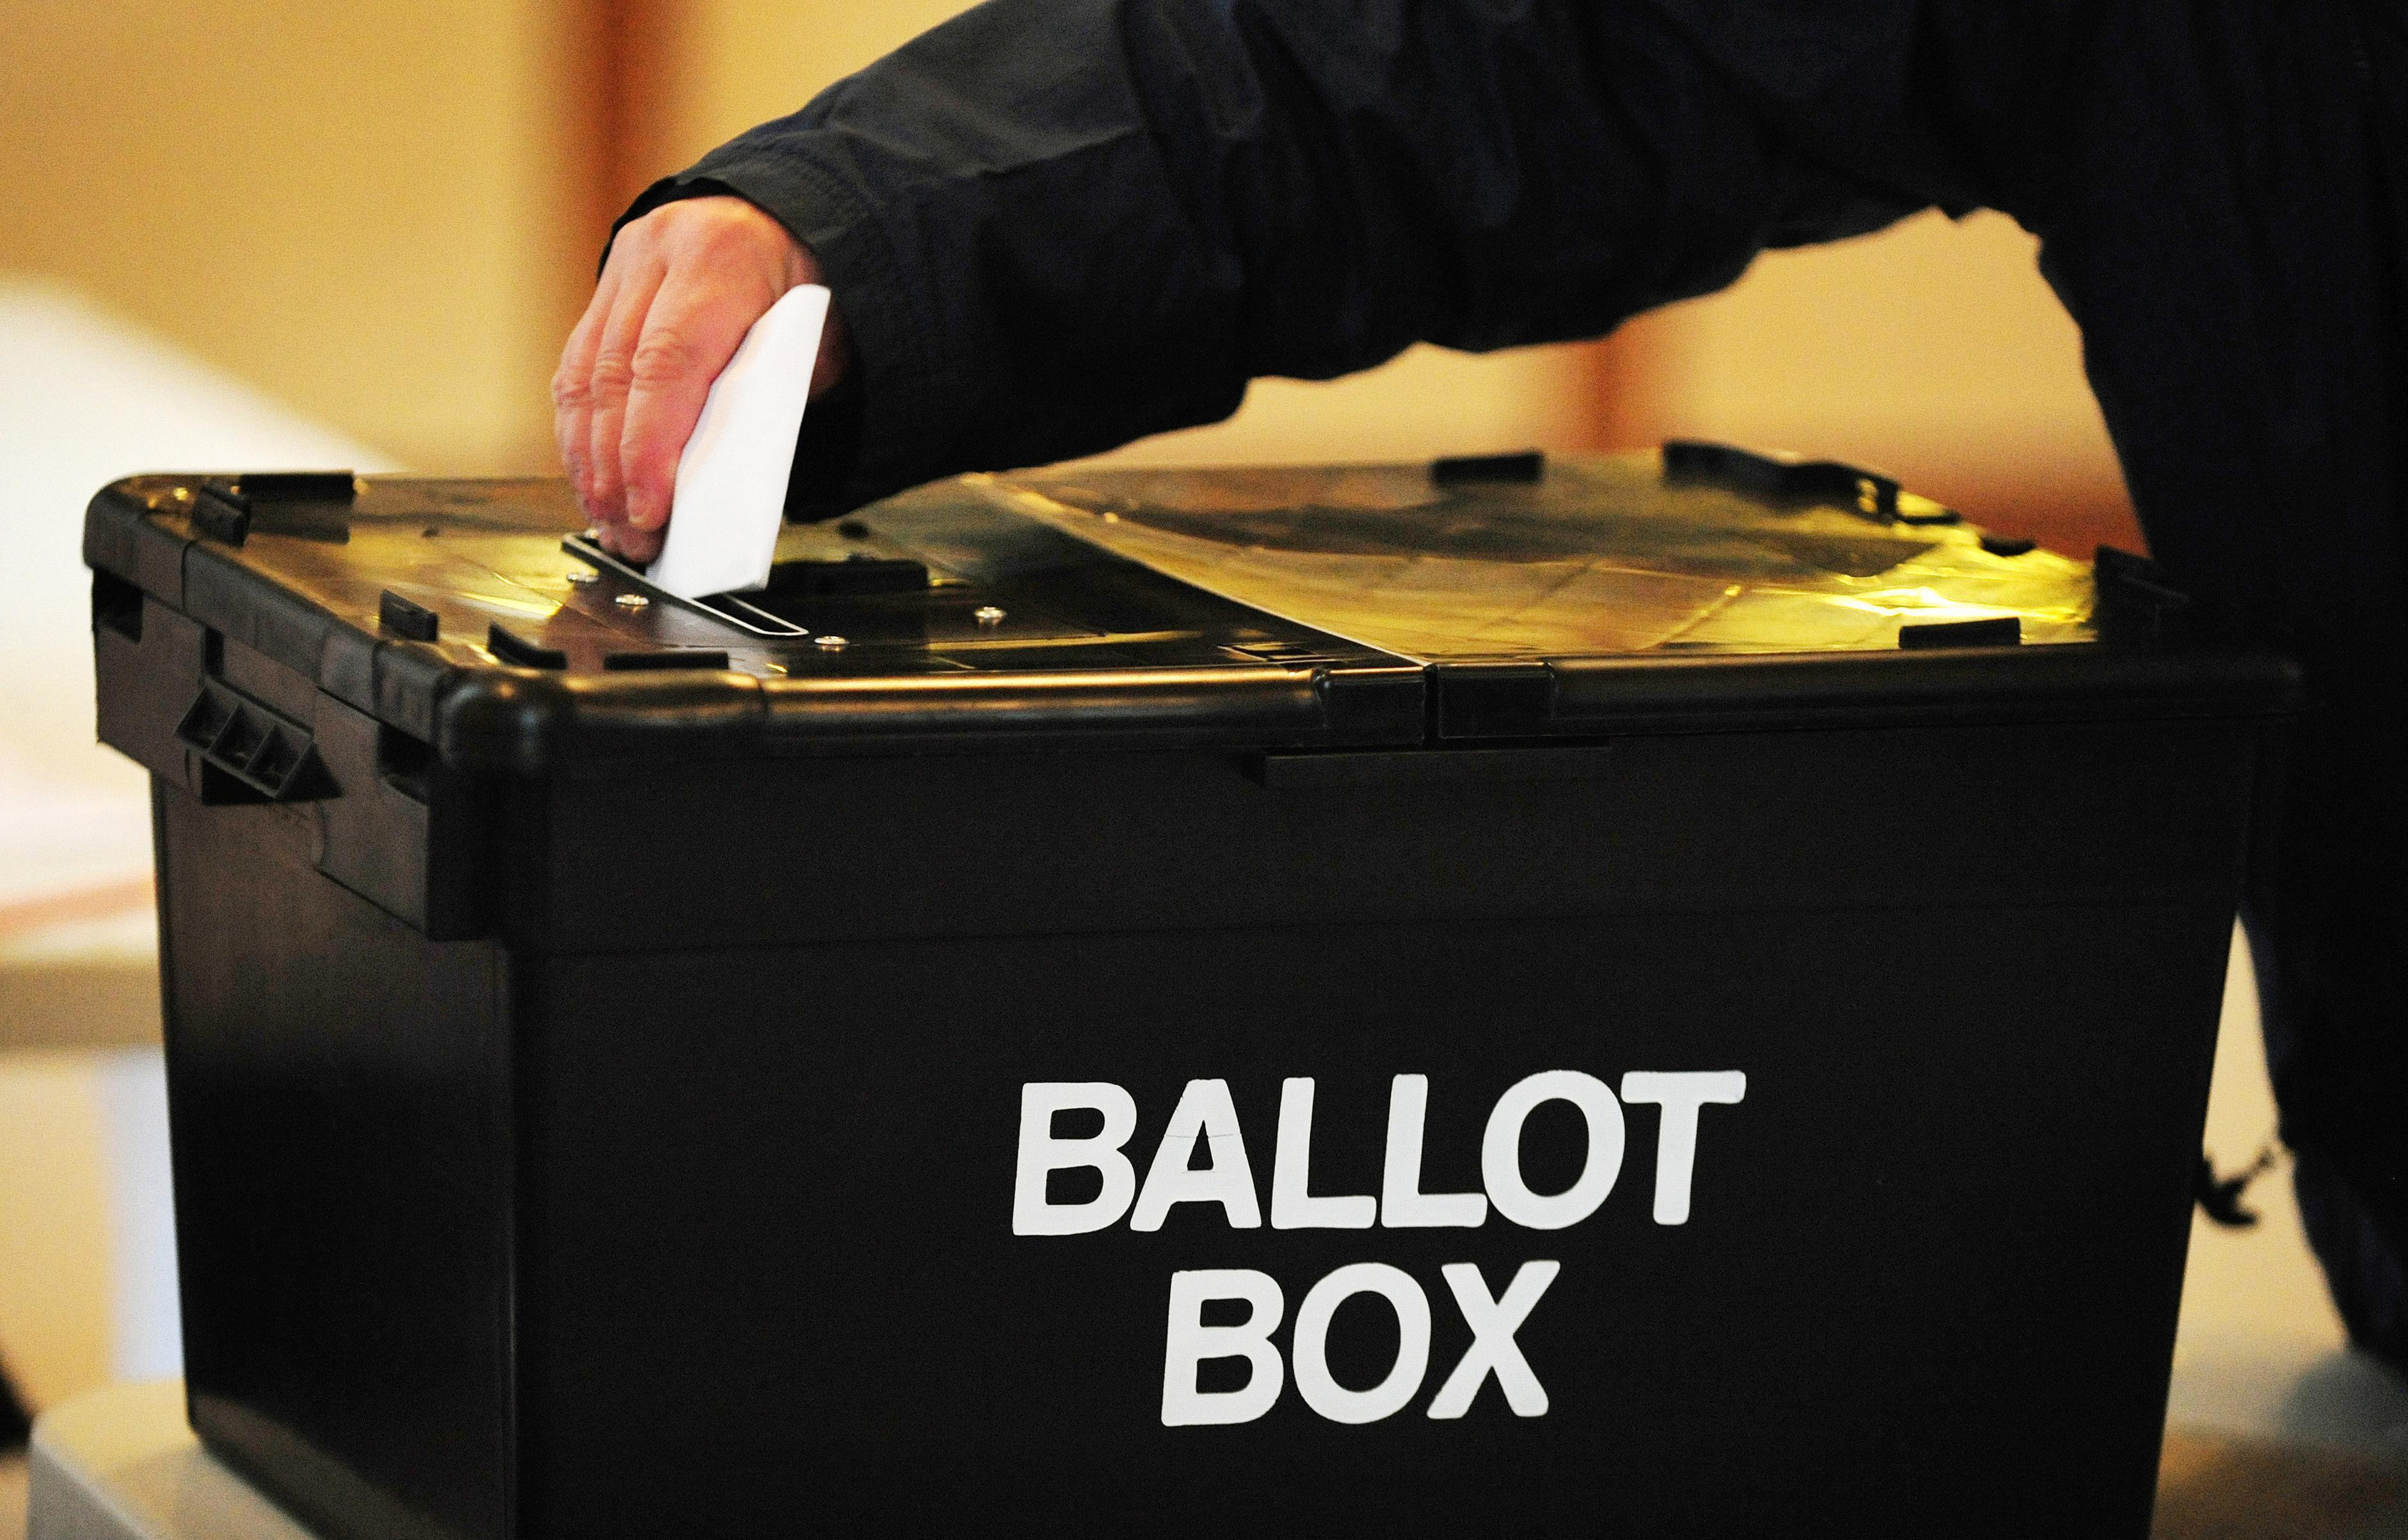 The Electoral Reform Society wants to see the first past the post voting system scrapped for the general election.